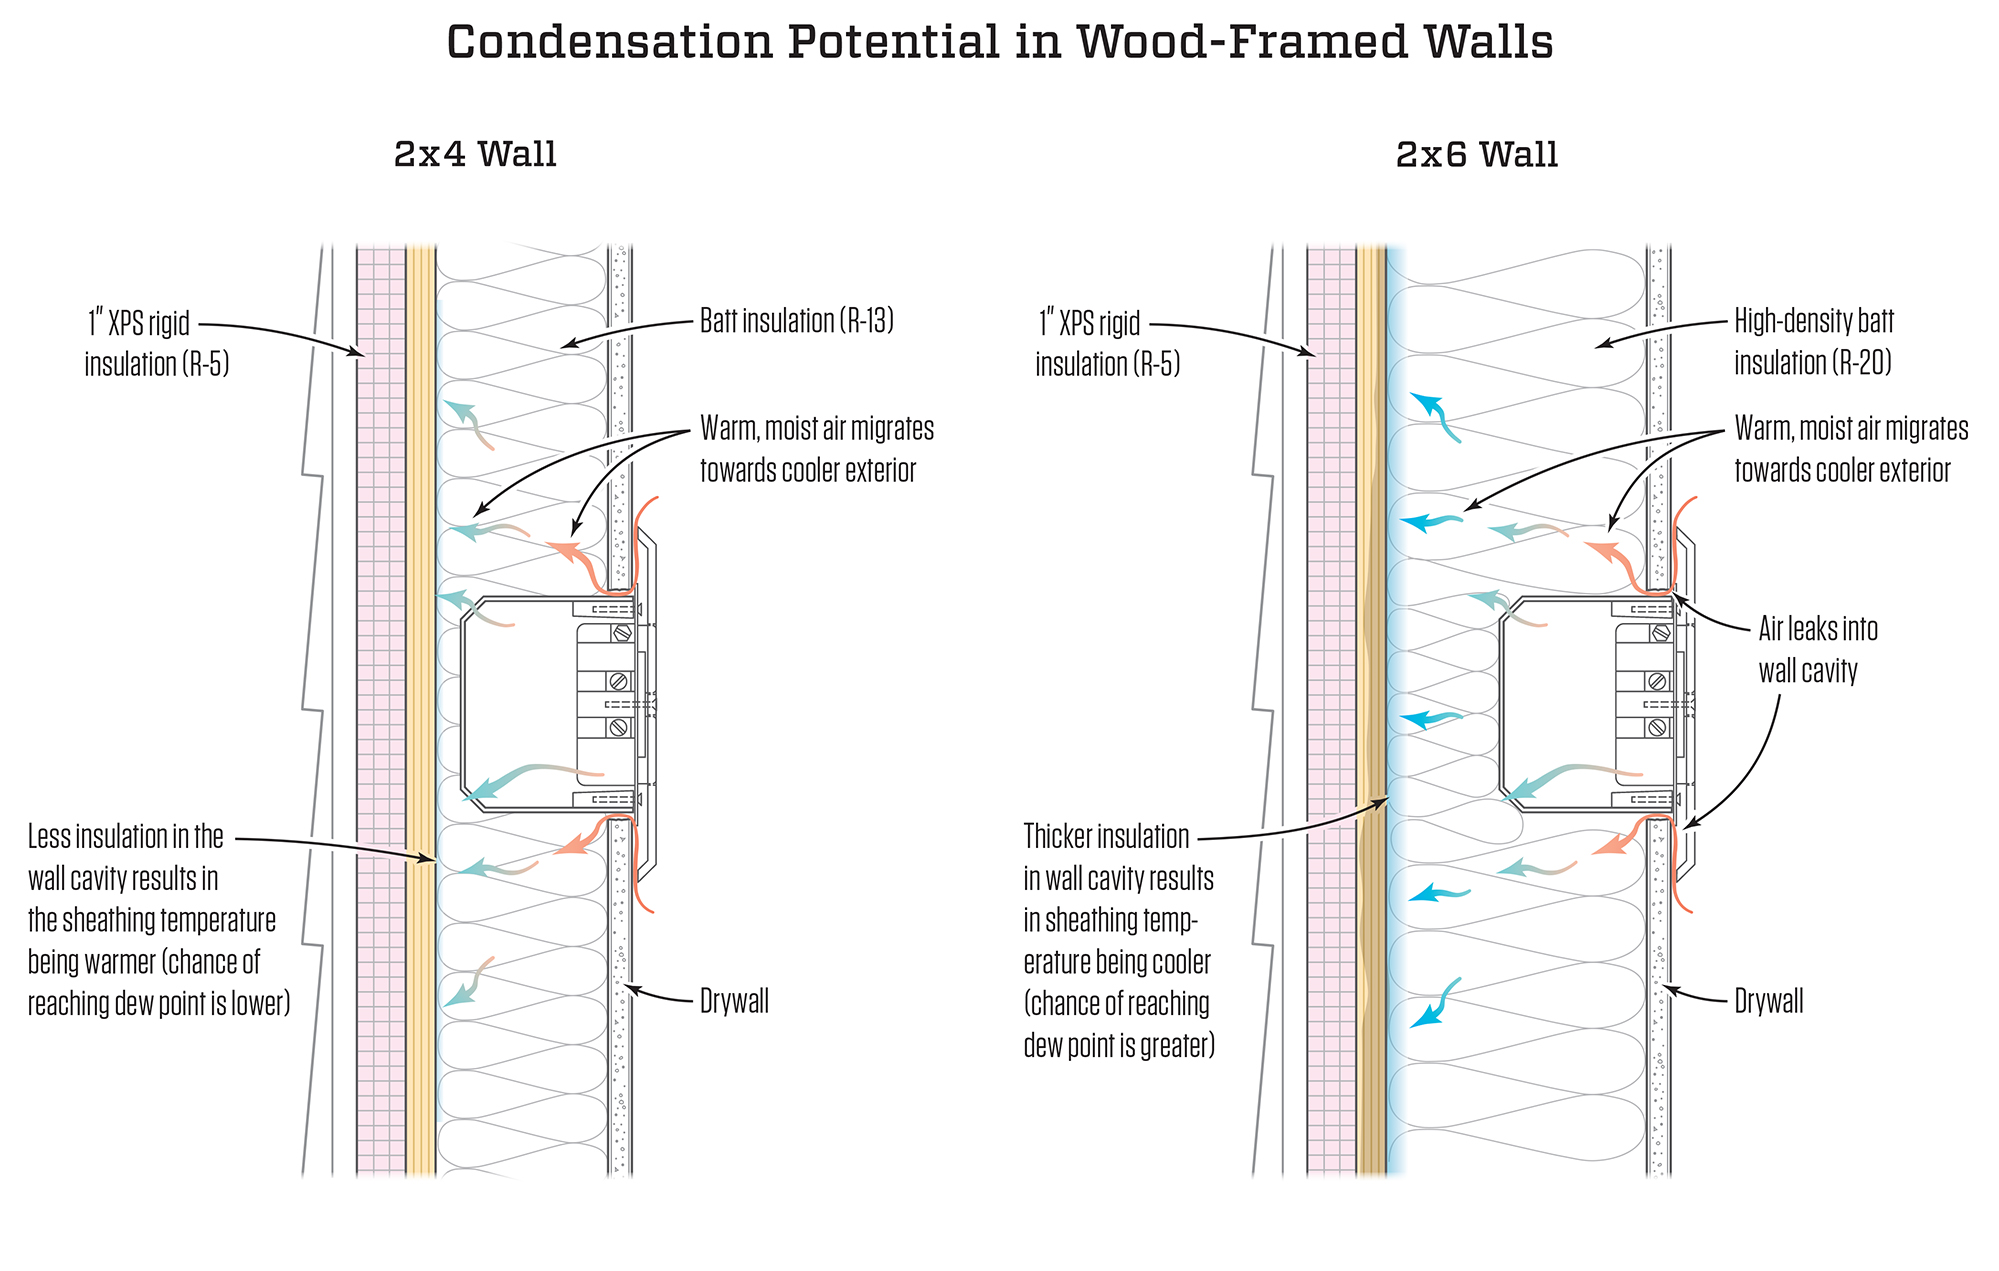 Tim Healey More Cavity Fill Requires Continuous Insulation In A Wall With Exterior The Risk Of Condensation Depends On